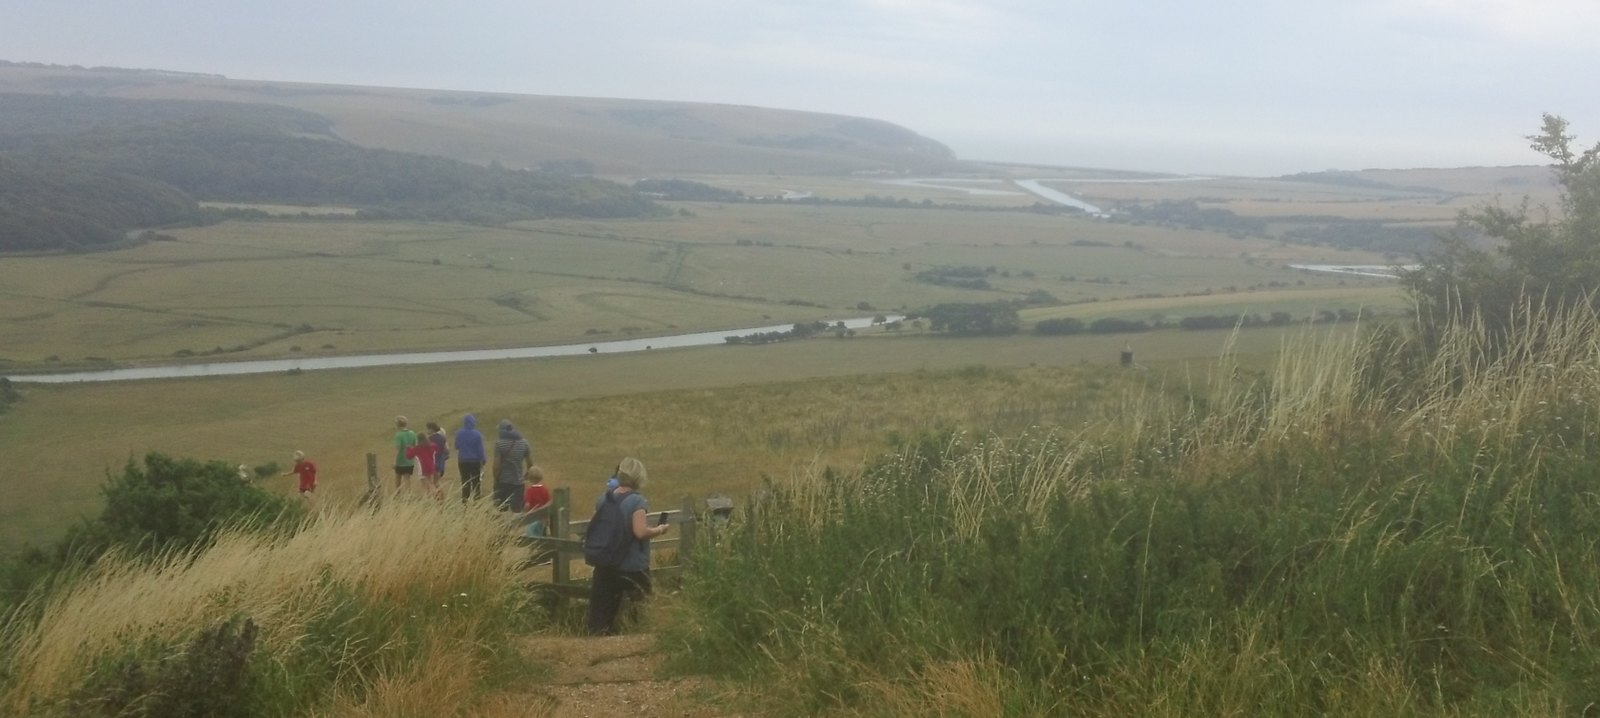 Cuckmere river & Exceat Gap viewed on descent from White Horse